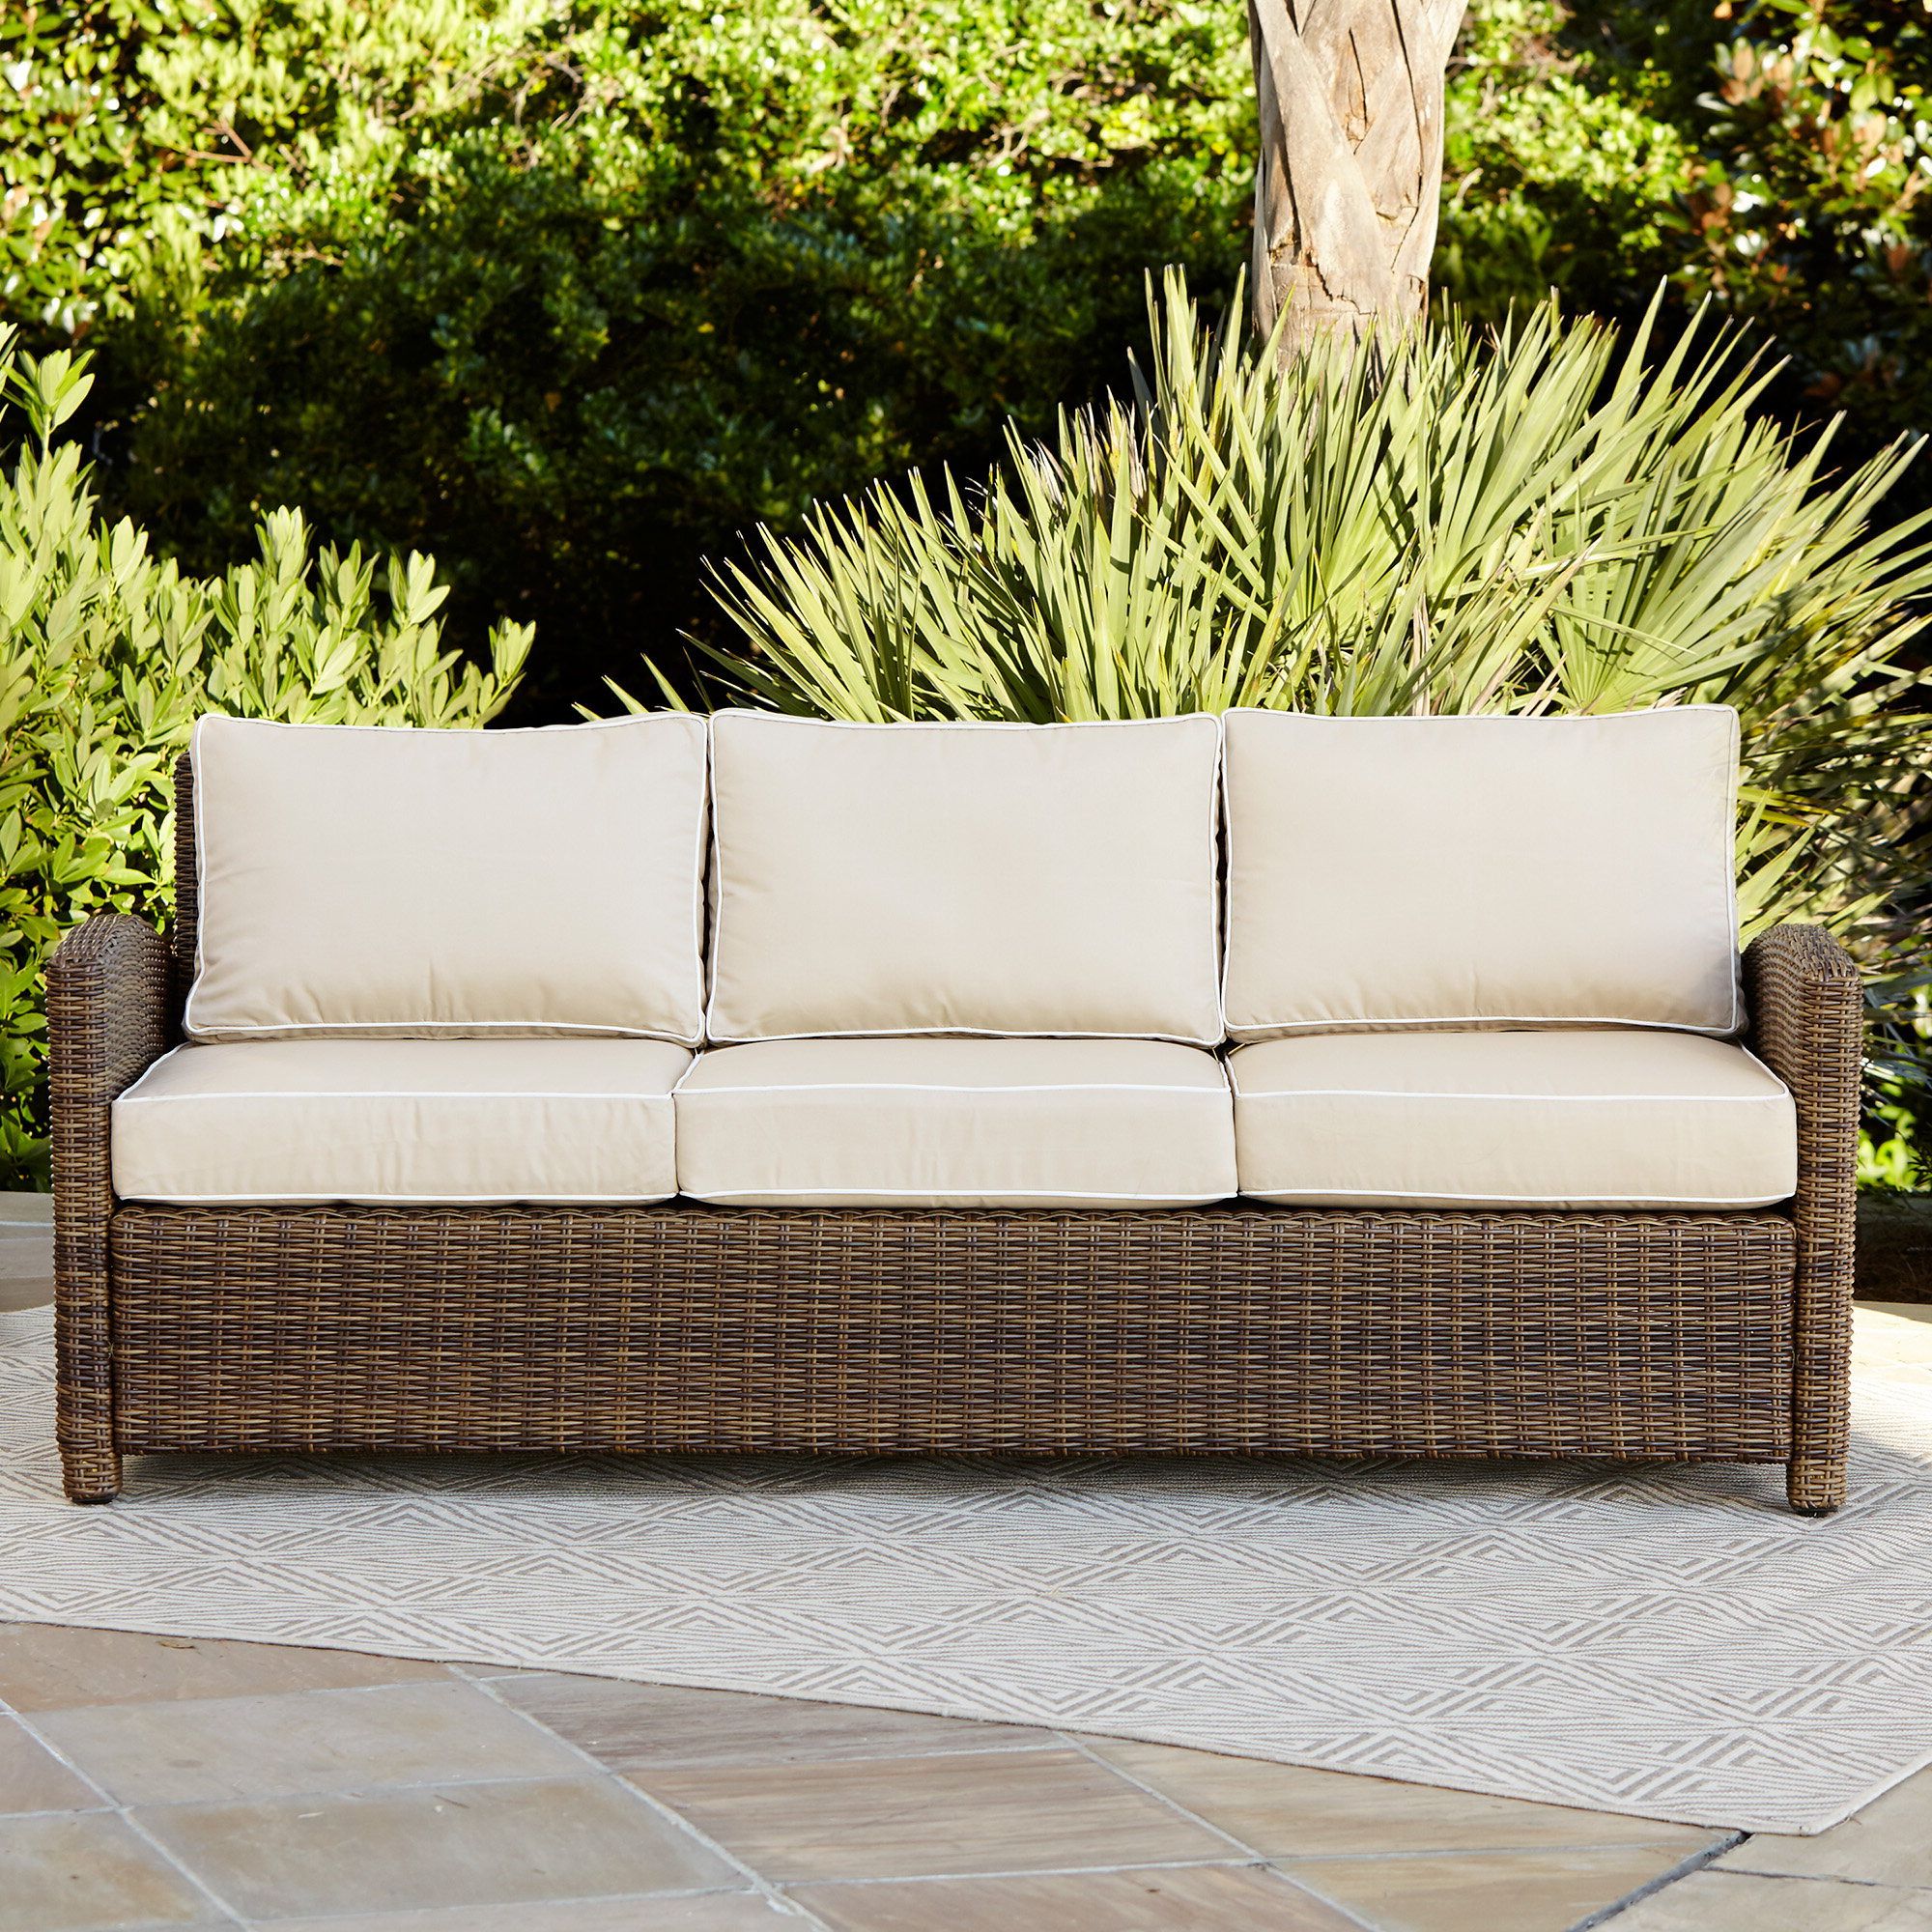 Lawson Patio Sofa With Cushions In 2019 Burruss Patio Sectionals With Cushions (View 15 of 25)